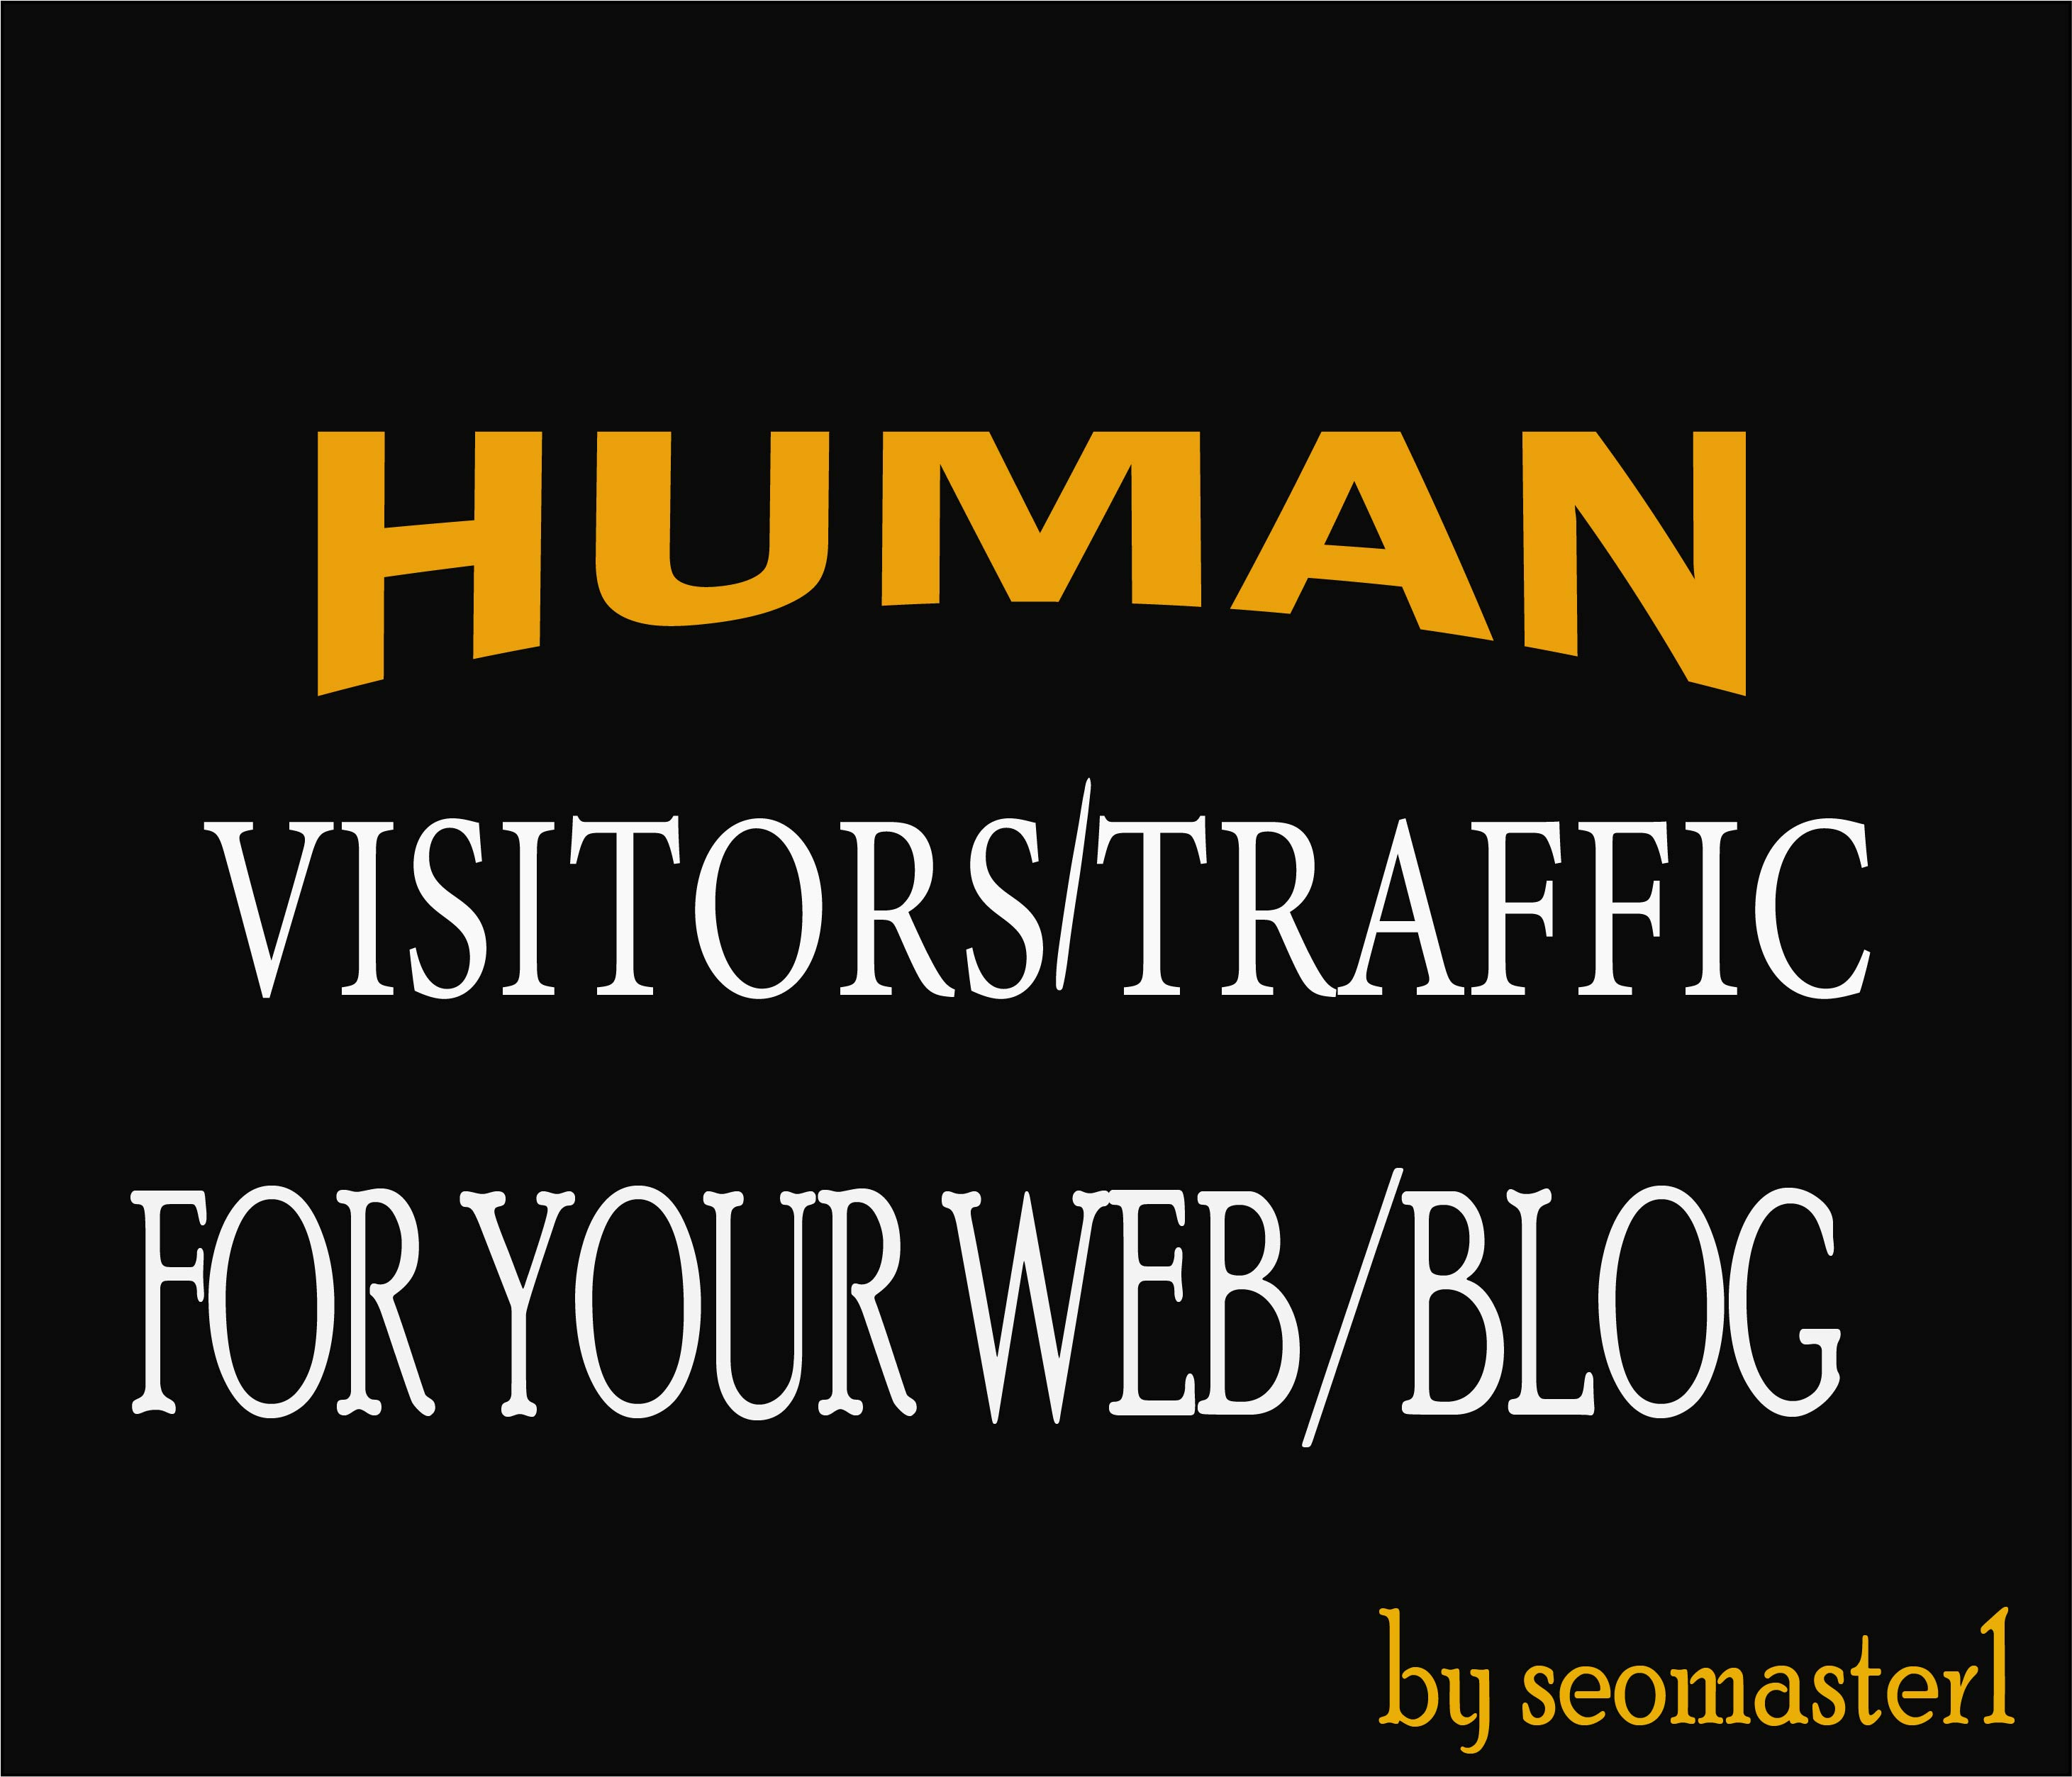 8000 Human visitors/traffic to your Web/Blog Adsense safe and get Good Alexa rank